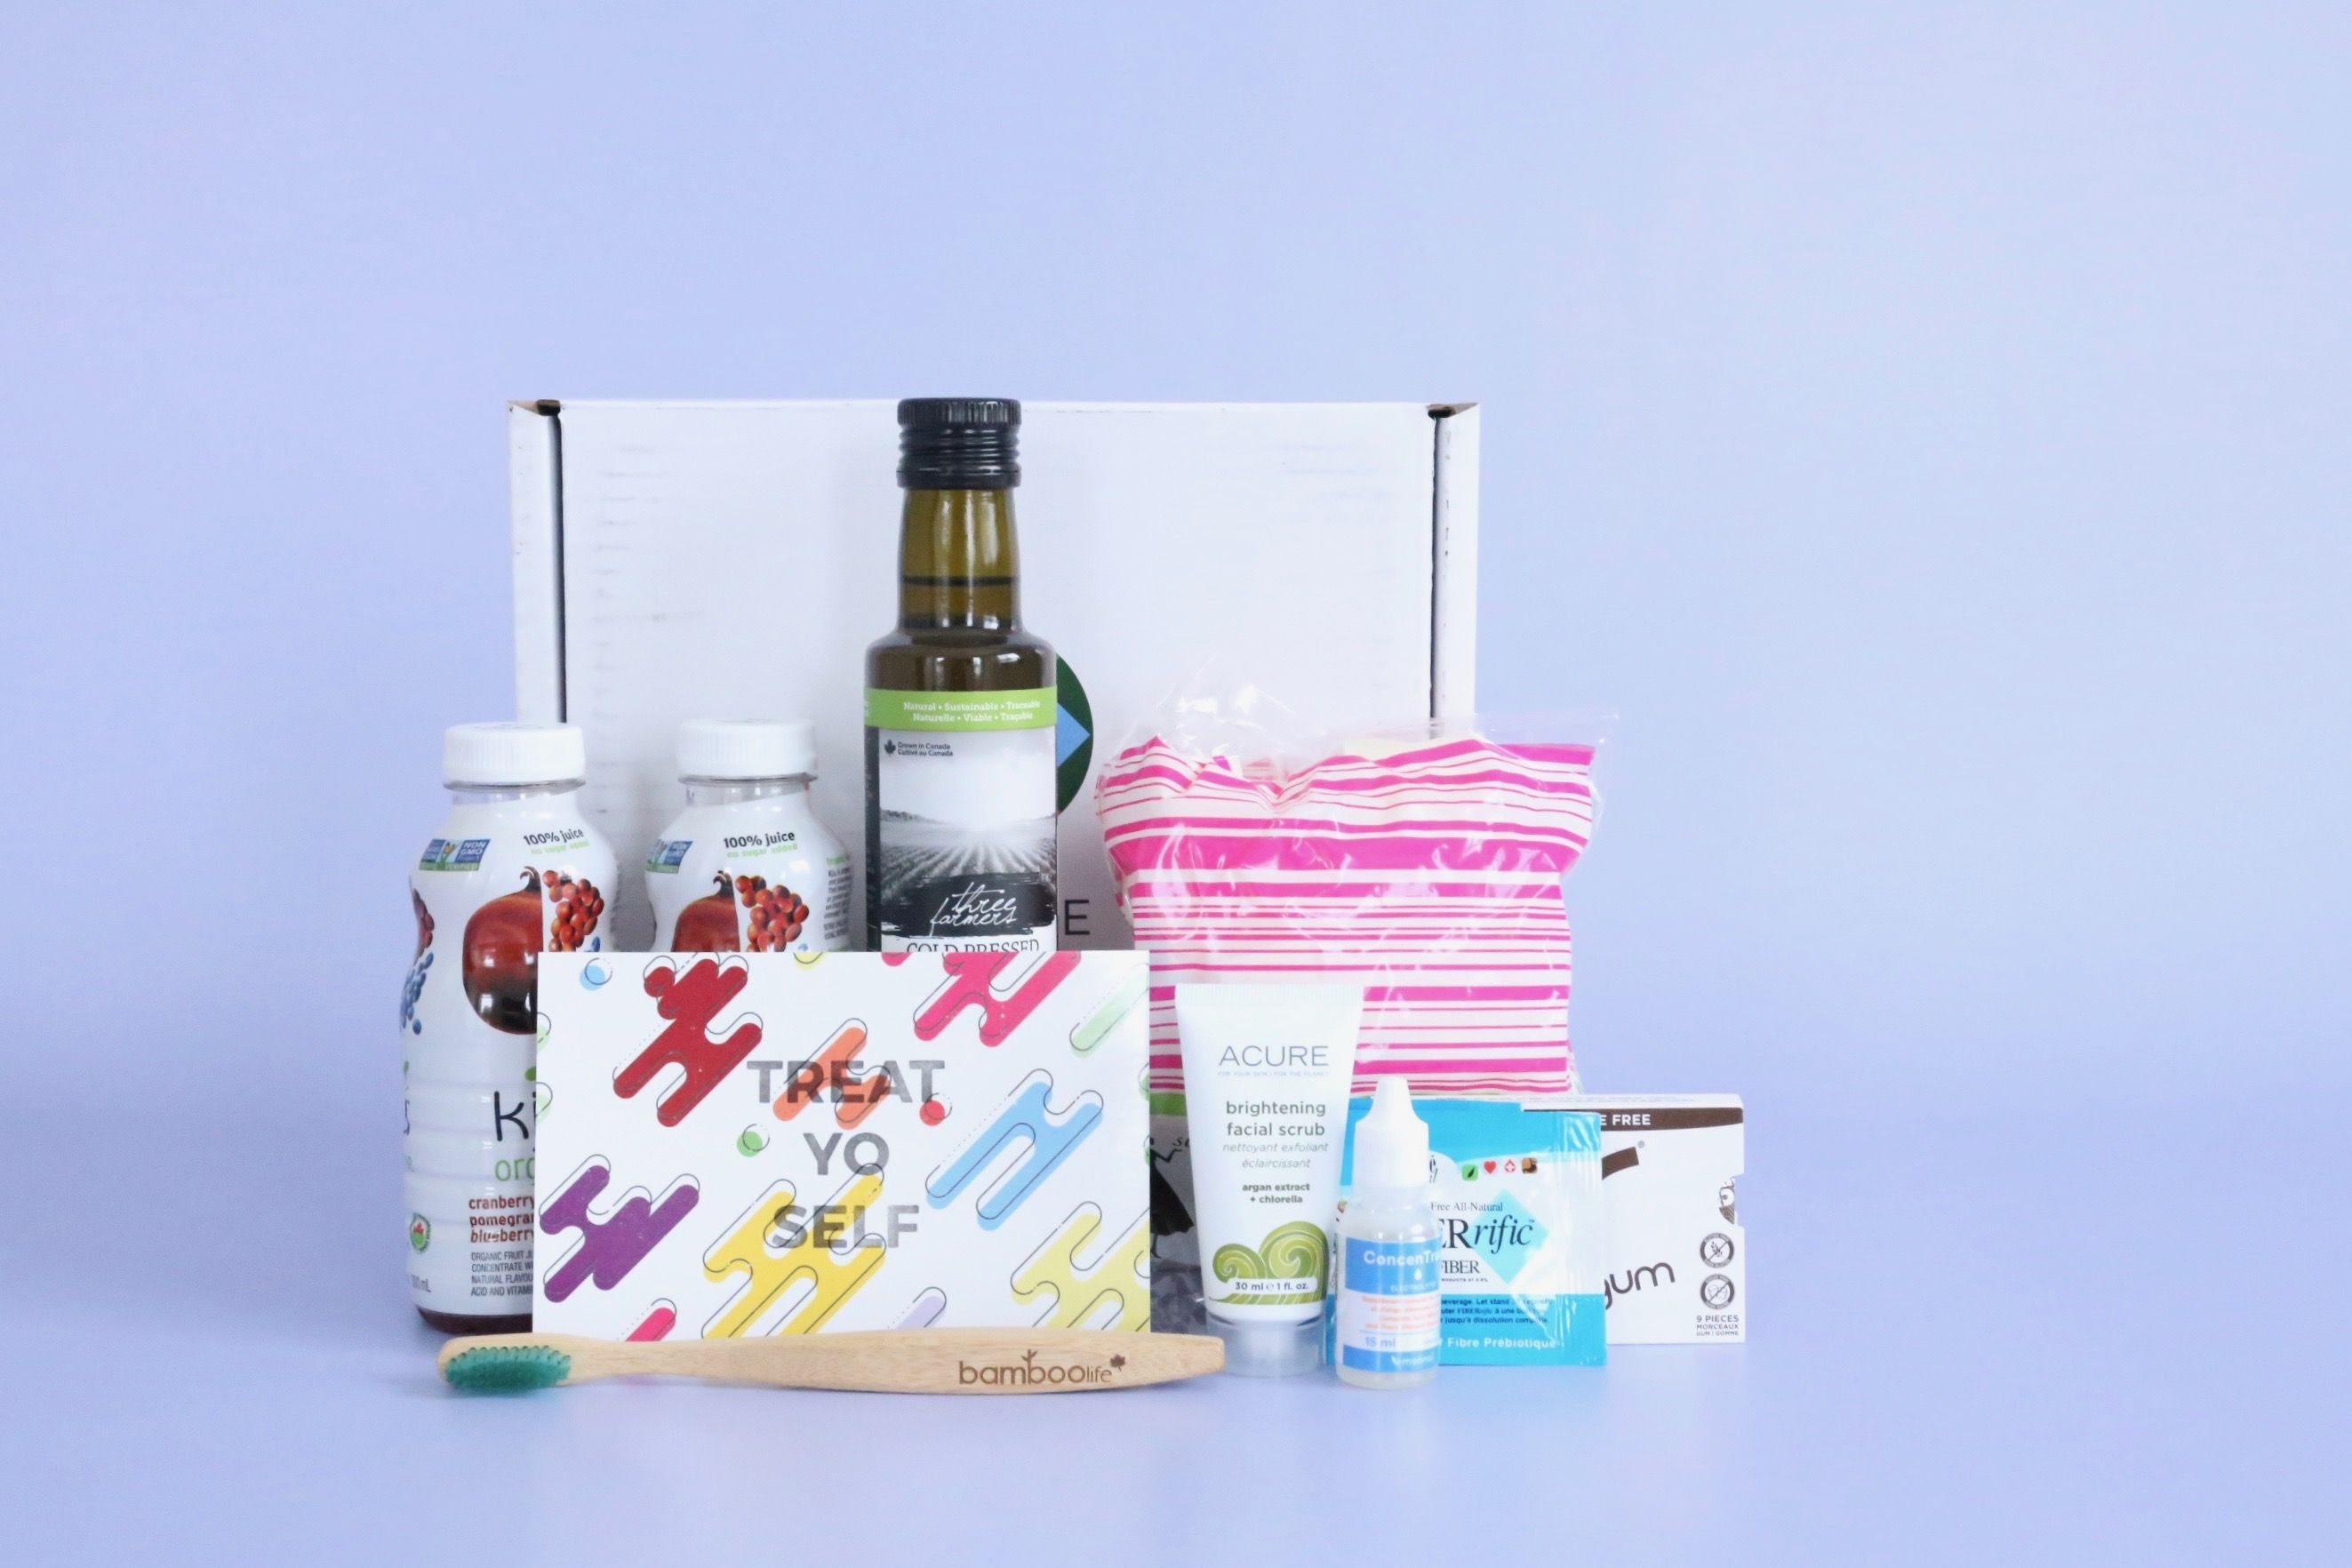 Little Life Box Review January 2017 https://www.ayearofboxes.com/reviews/little-life-box-review-january-2017/